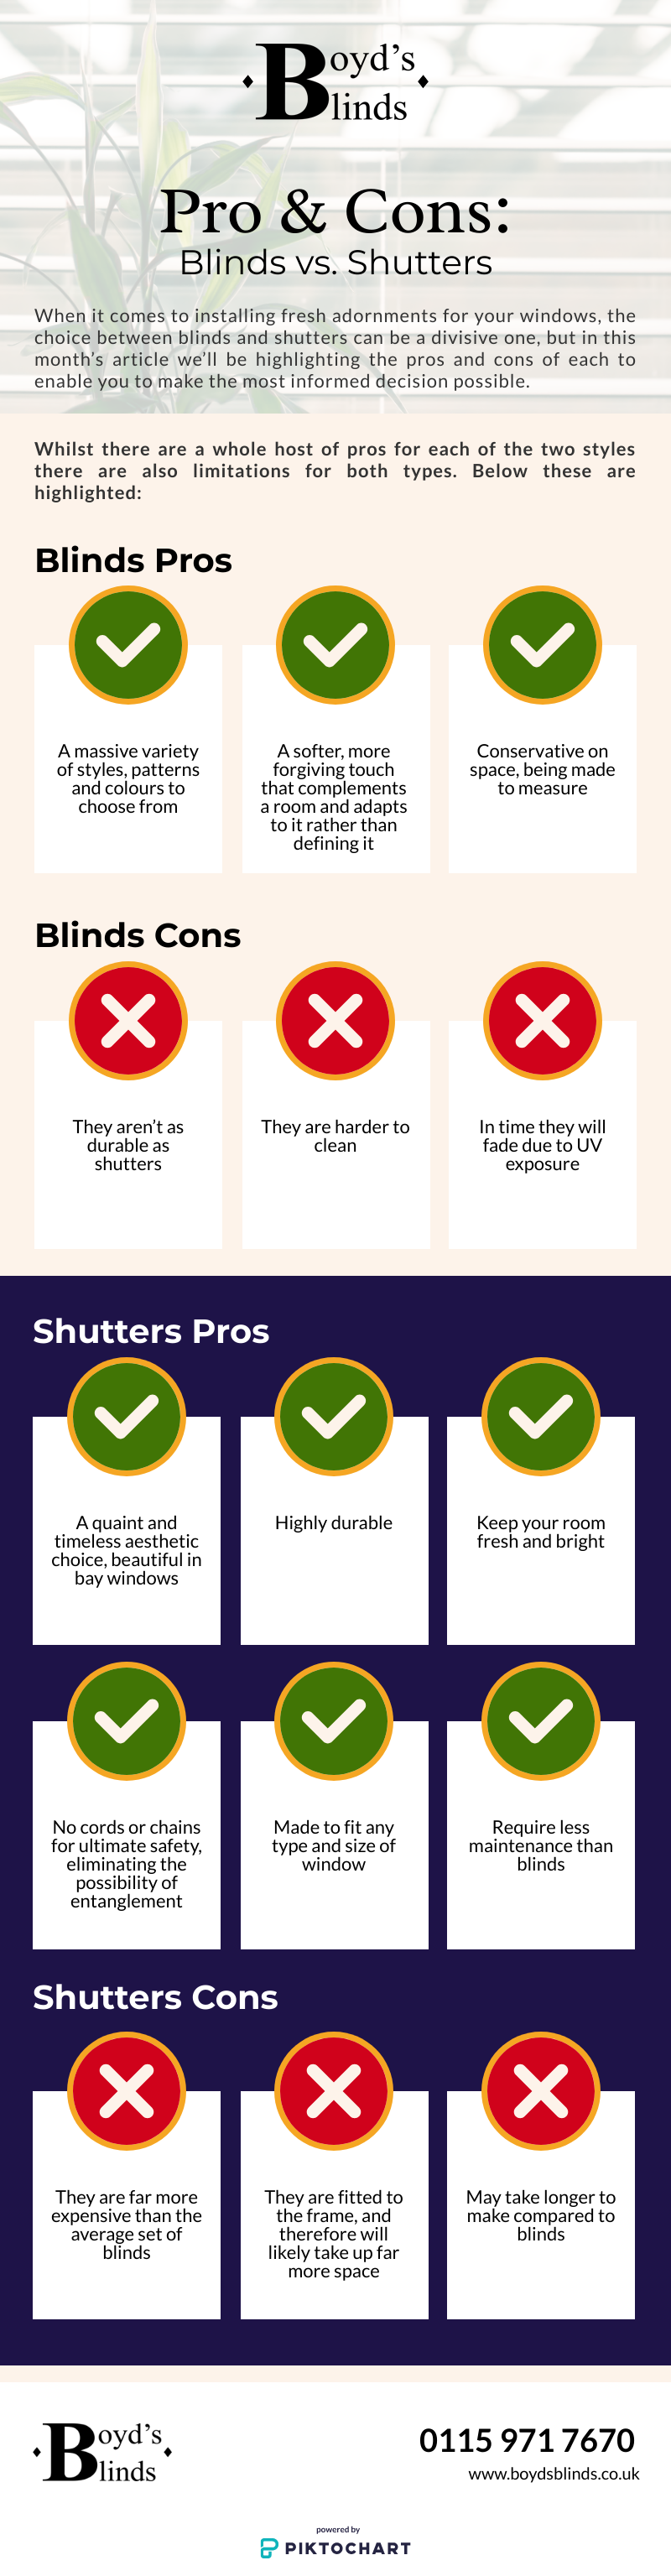 pros & cons: blinds vs shutters infographic